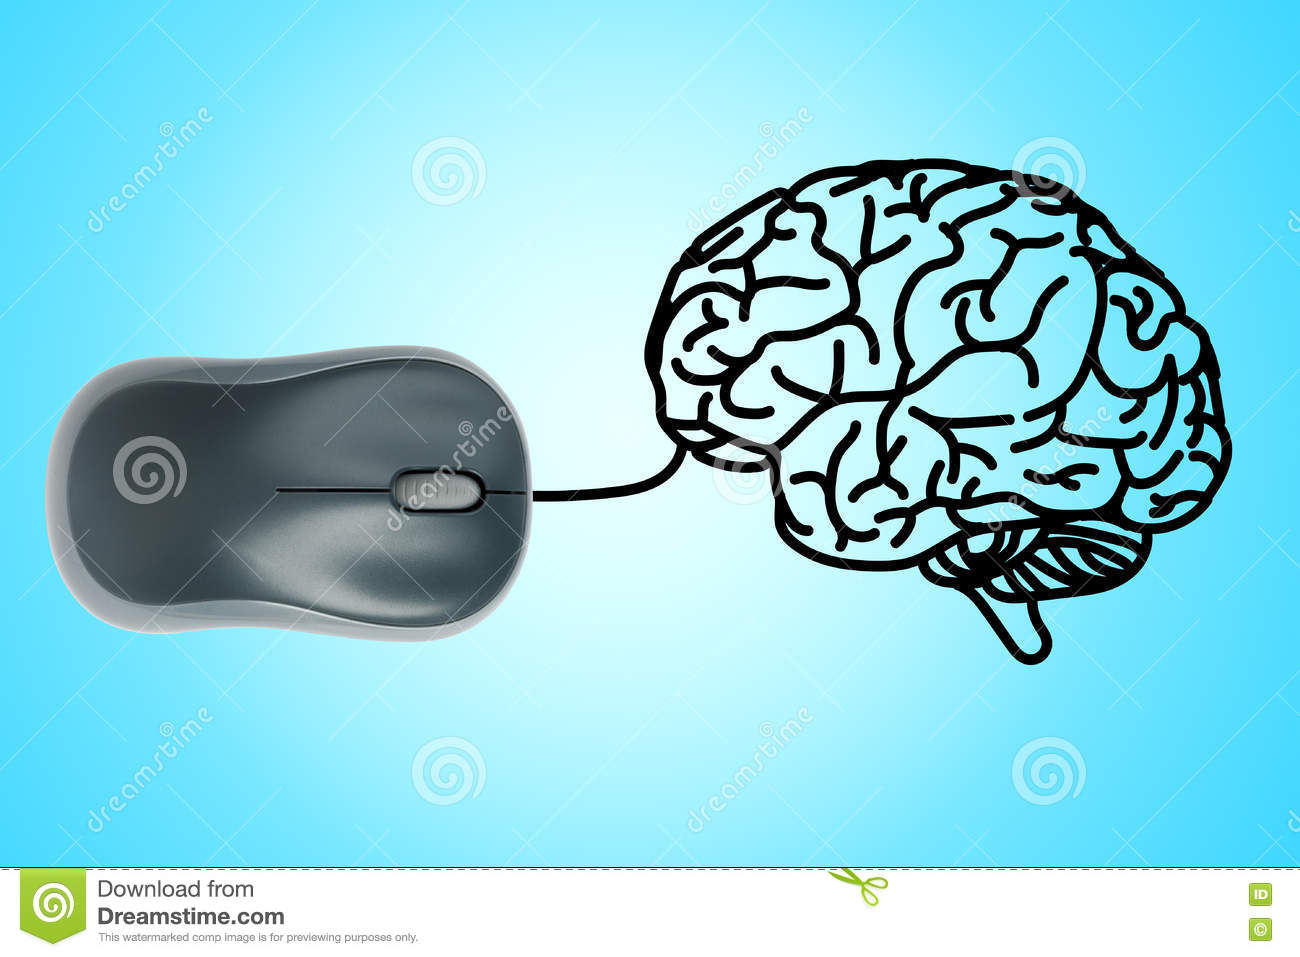 hight resolution of computer mouse wire in to human brain